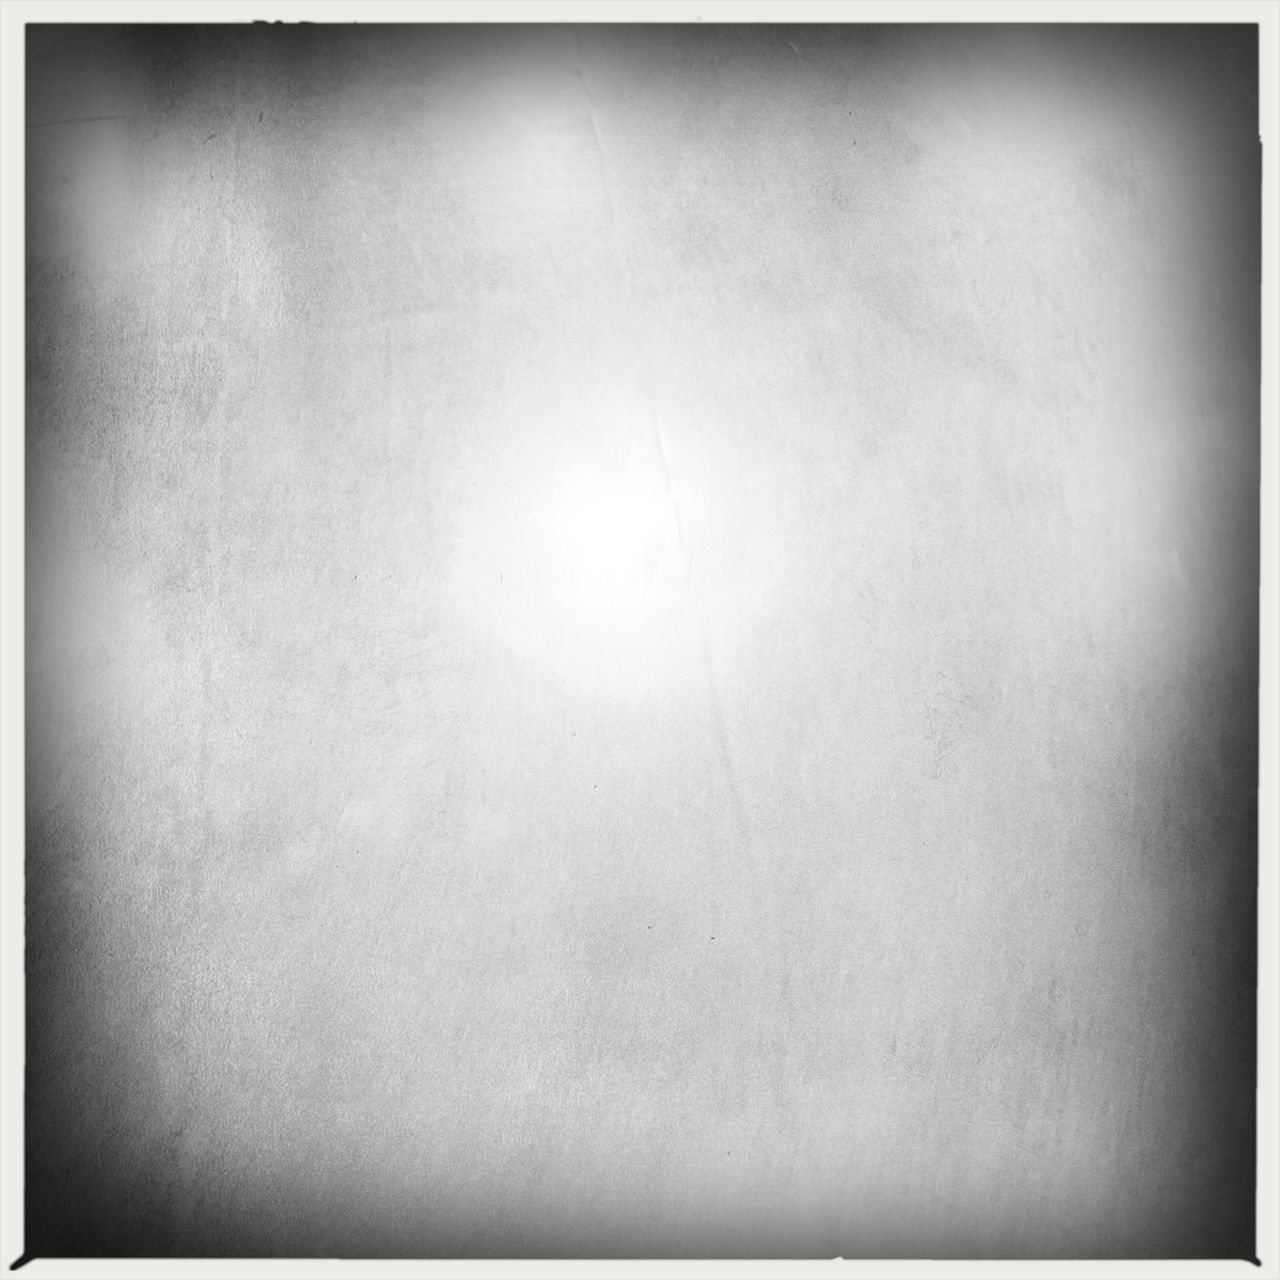 Auto Post Production Filter Backgrounds Beauty In Nature Clear Sky Copy Space Day Full Frame Indoors  Low Angle View Nature No People Sky Sunlight Tranquil Scene Tranquility Transfer Print Vignette Wall - Building Feature White Color